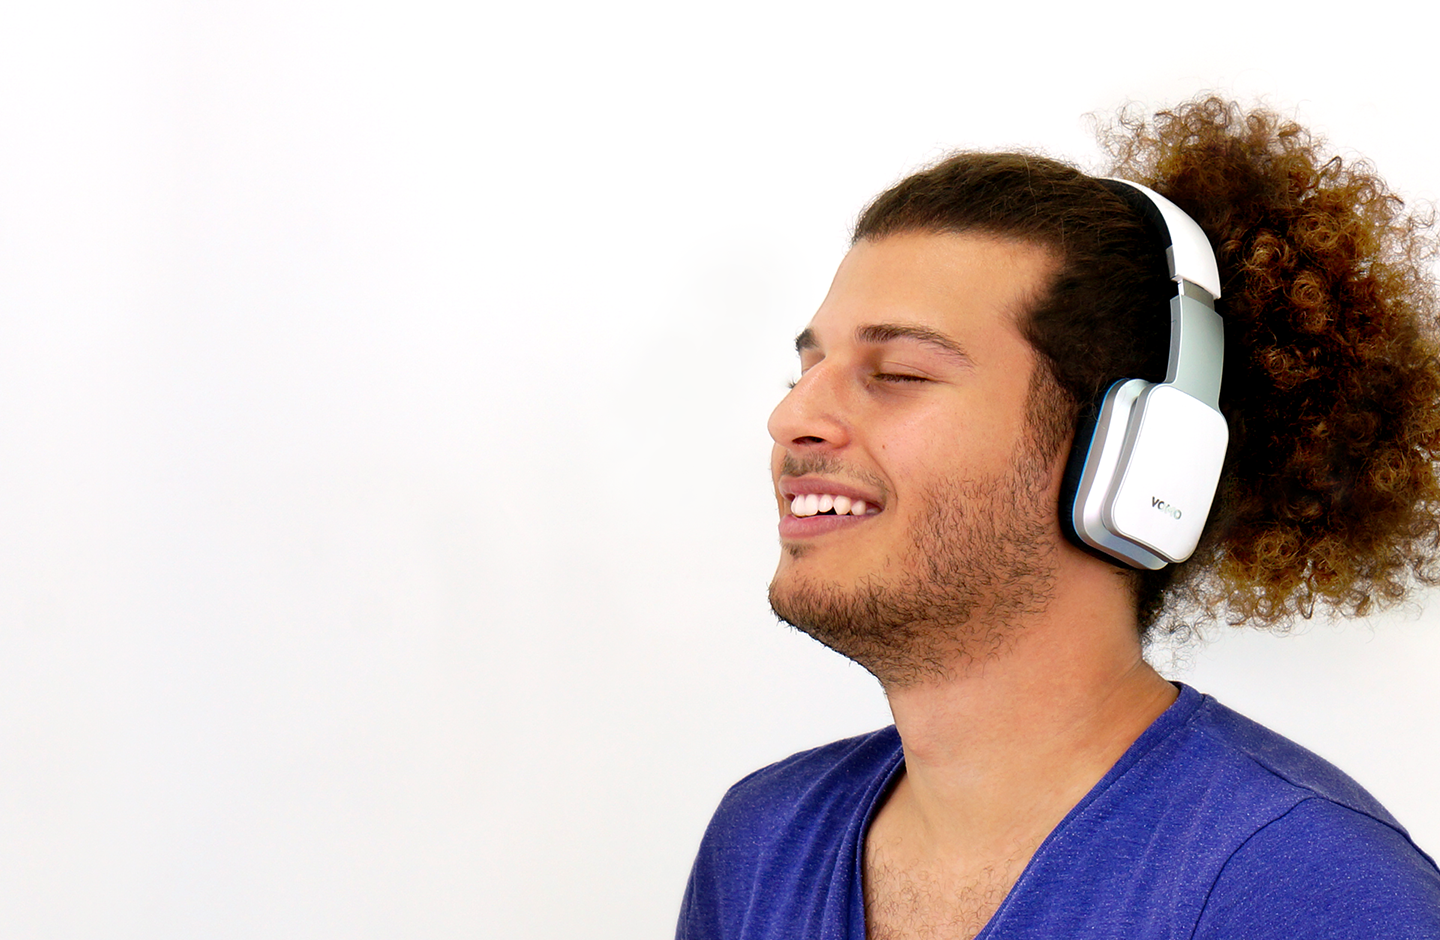 male with headphone bluetooth photography